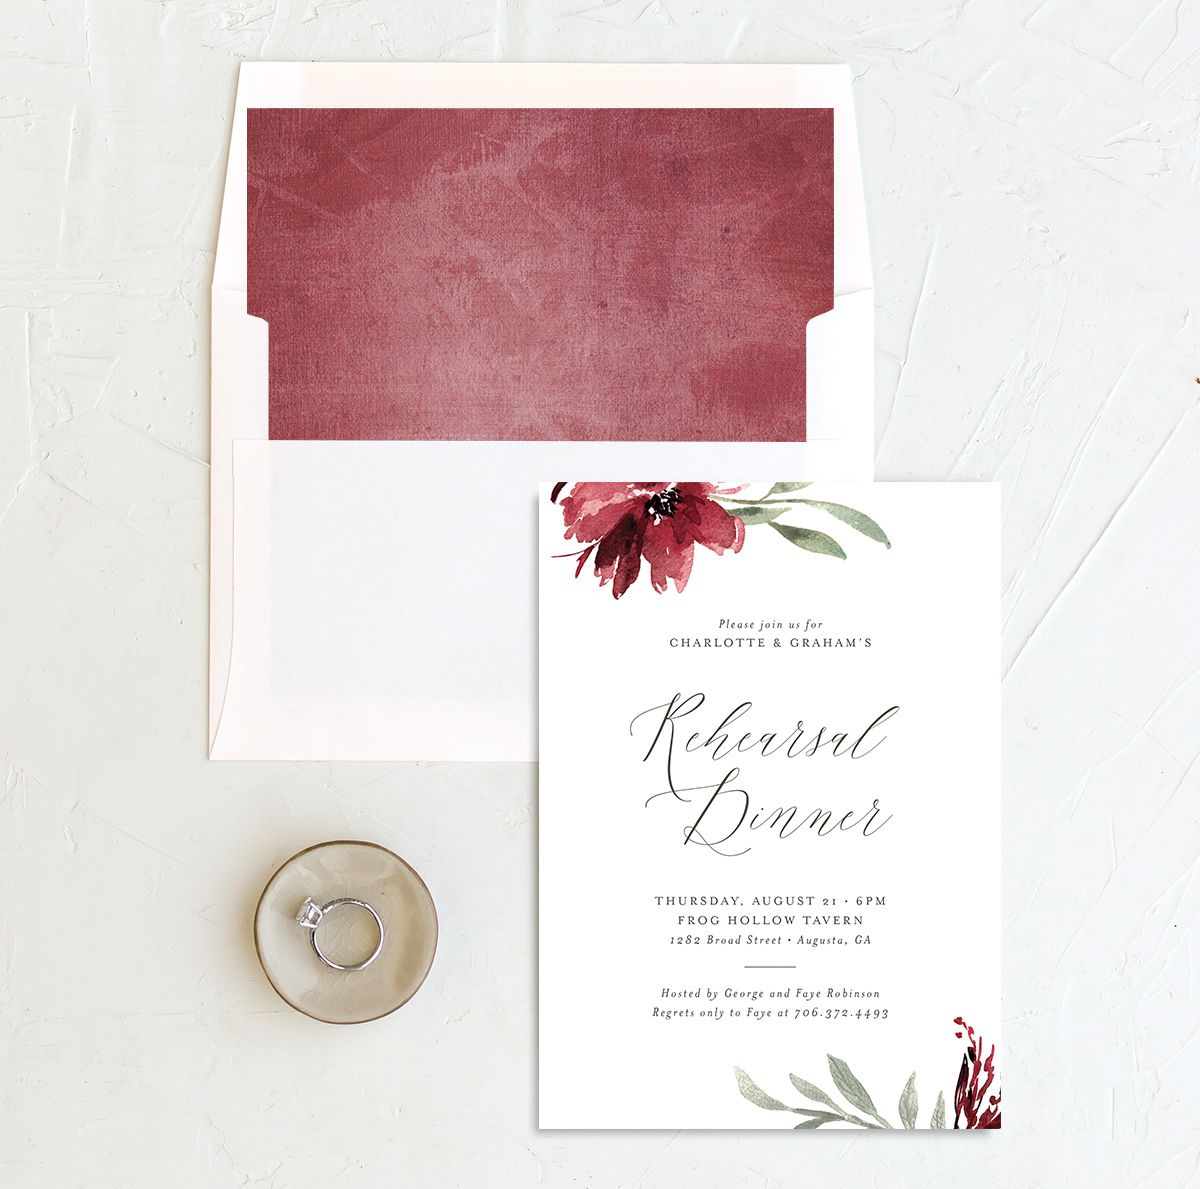 Muted floral rehearsal dinner invitations in burgundy and envelope liner